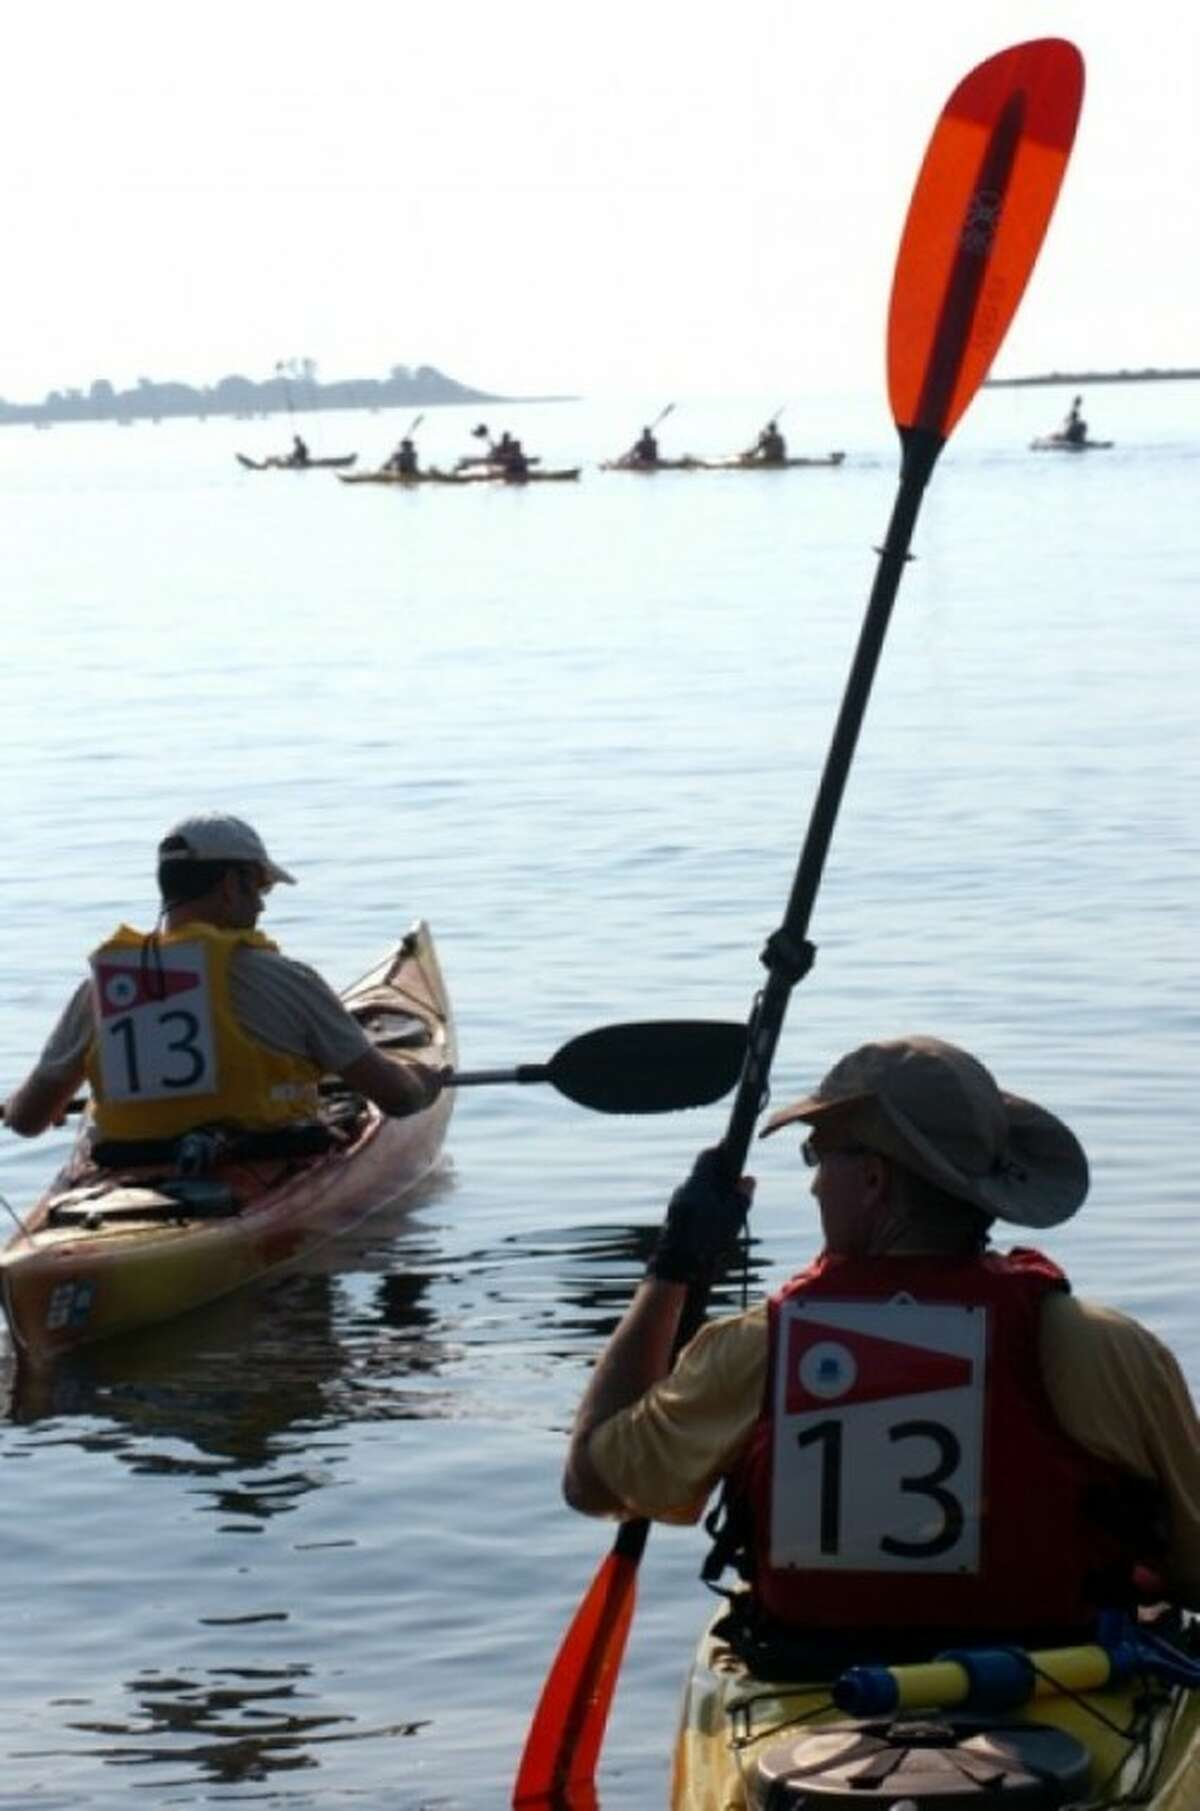 Kayakers with Pod 13 set out on the 8th annual Kayak for a Cause from Calf Pasture Beach Saturday. Hour photo / Erik Trautmann